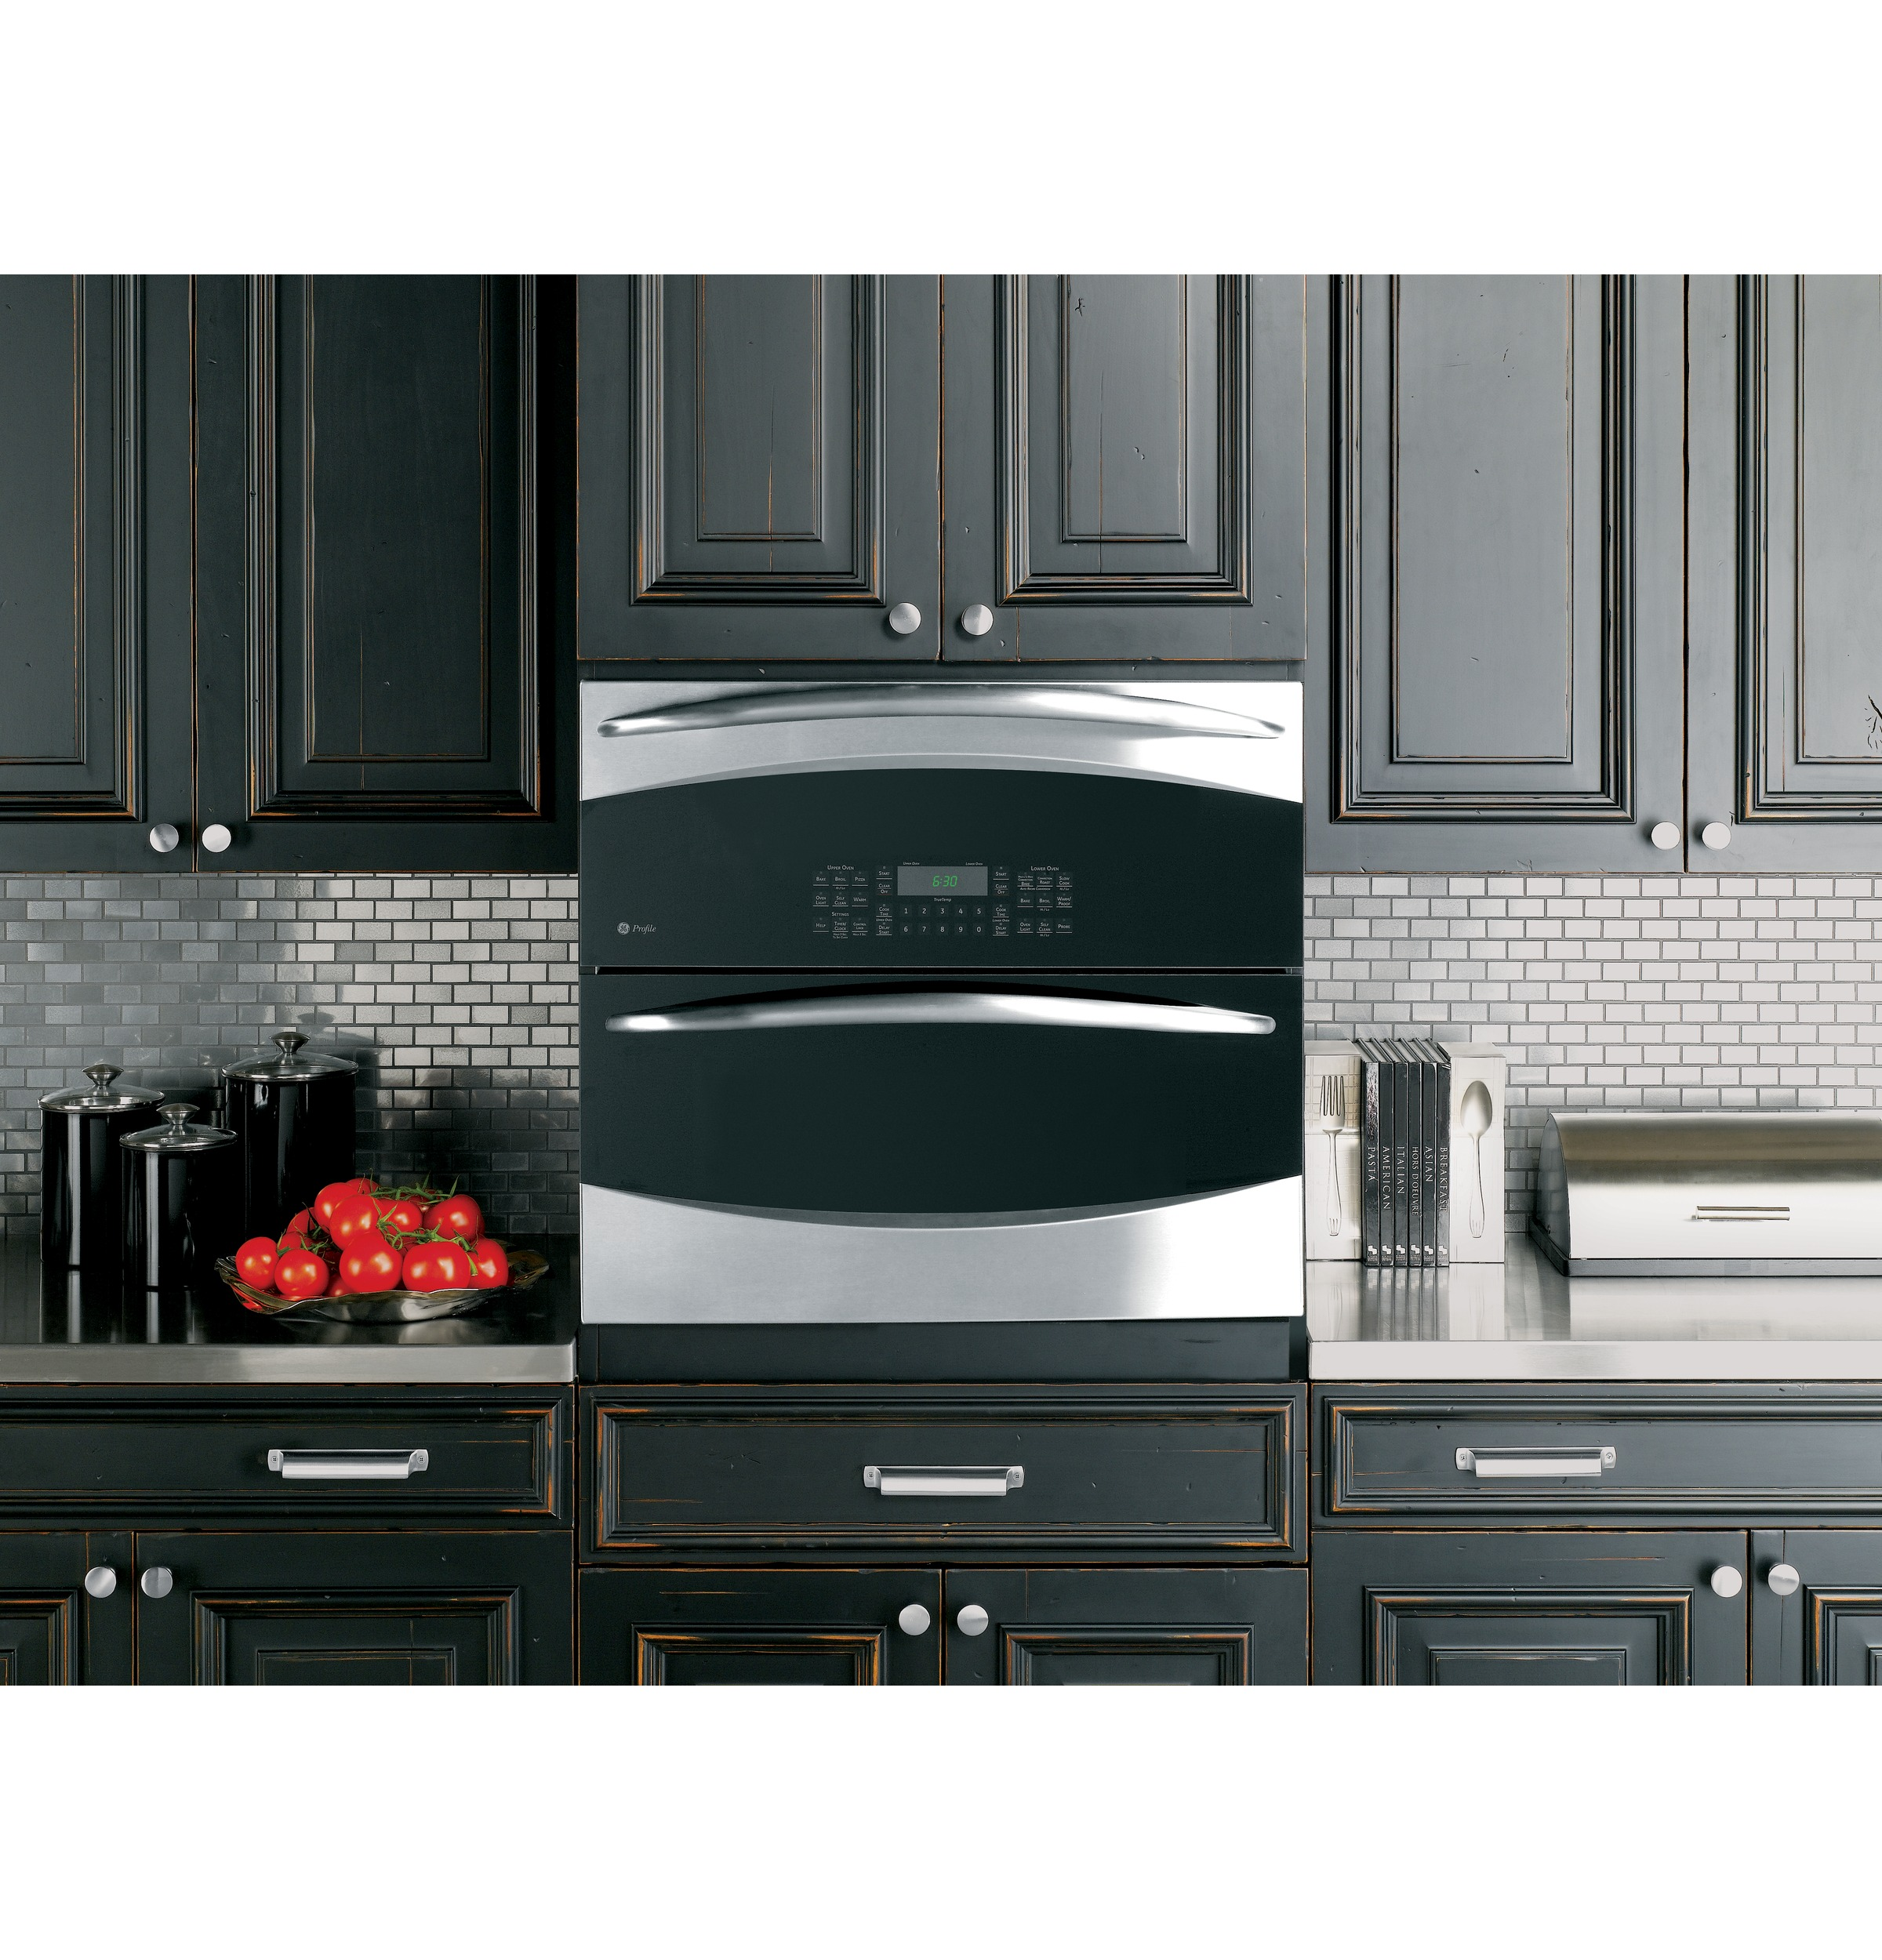 Ge cooks up double oven versatility in one small space for Small built in microwave oven